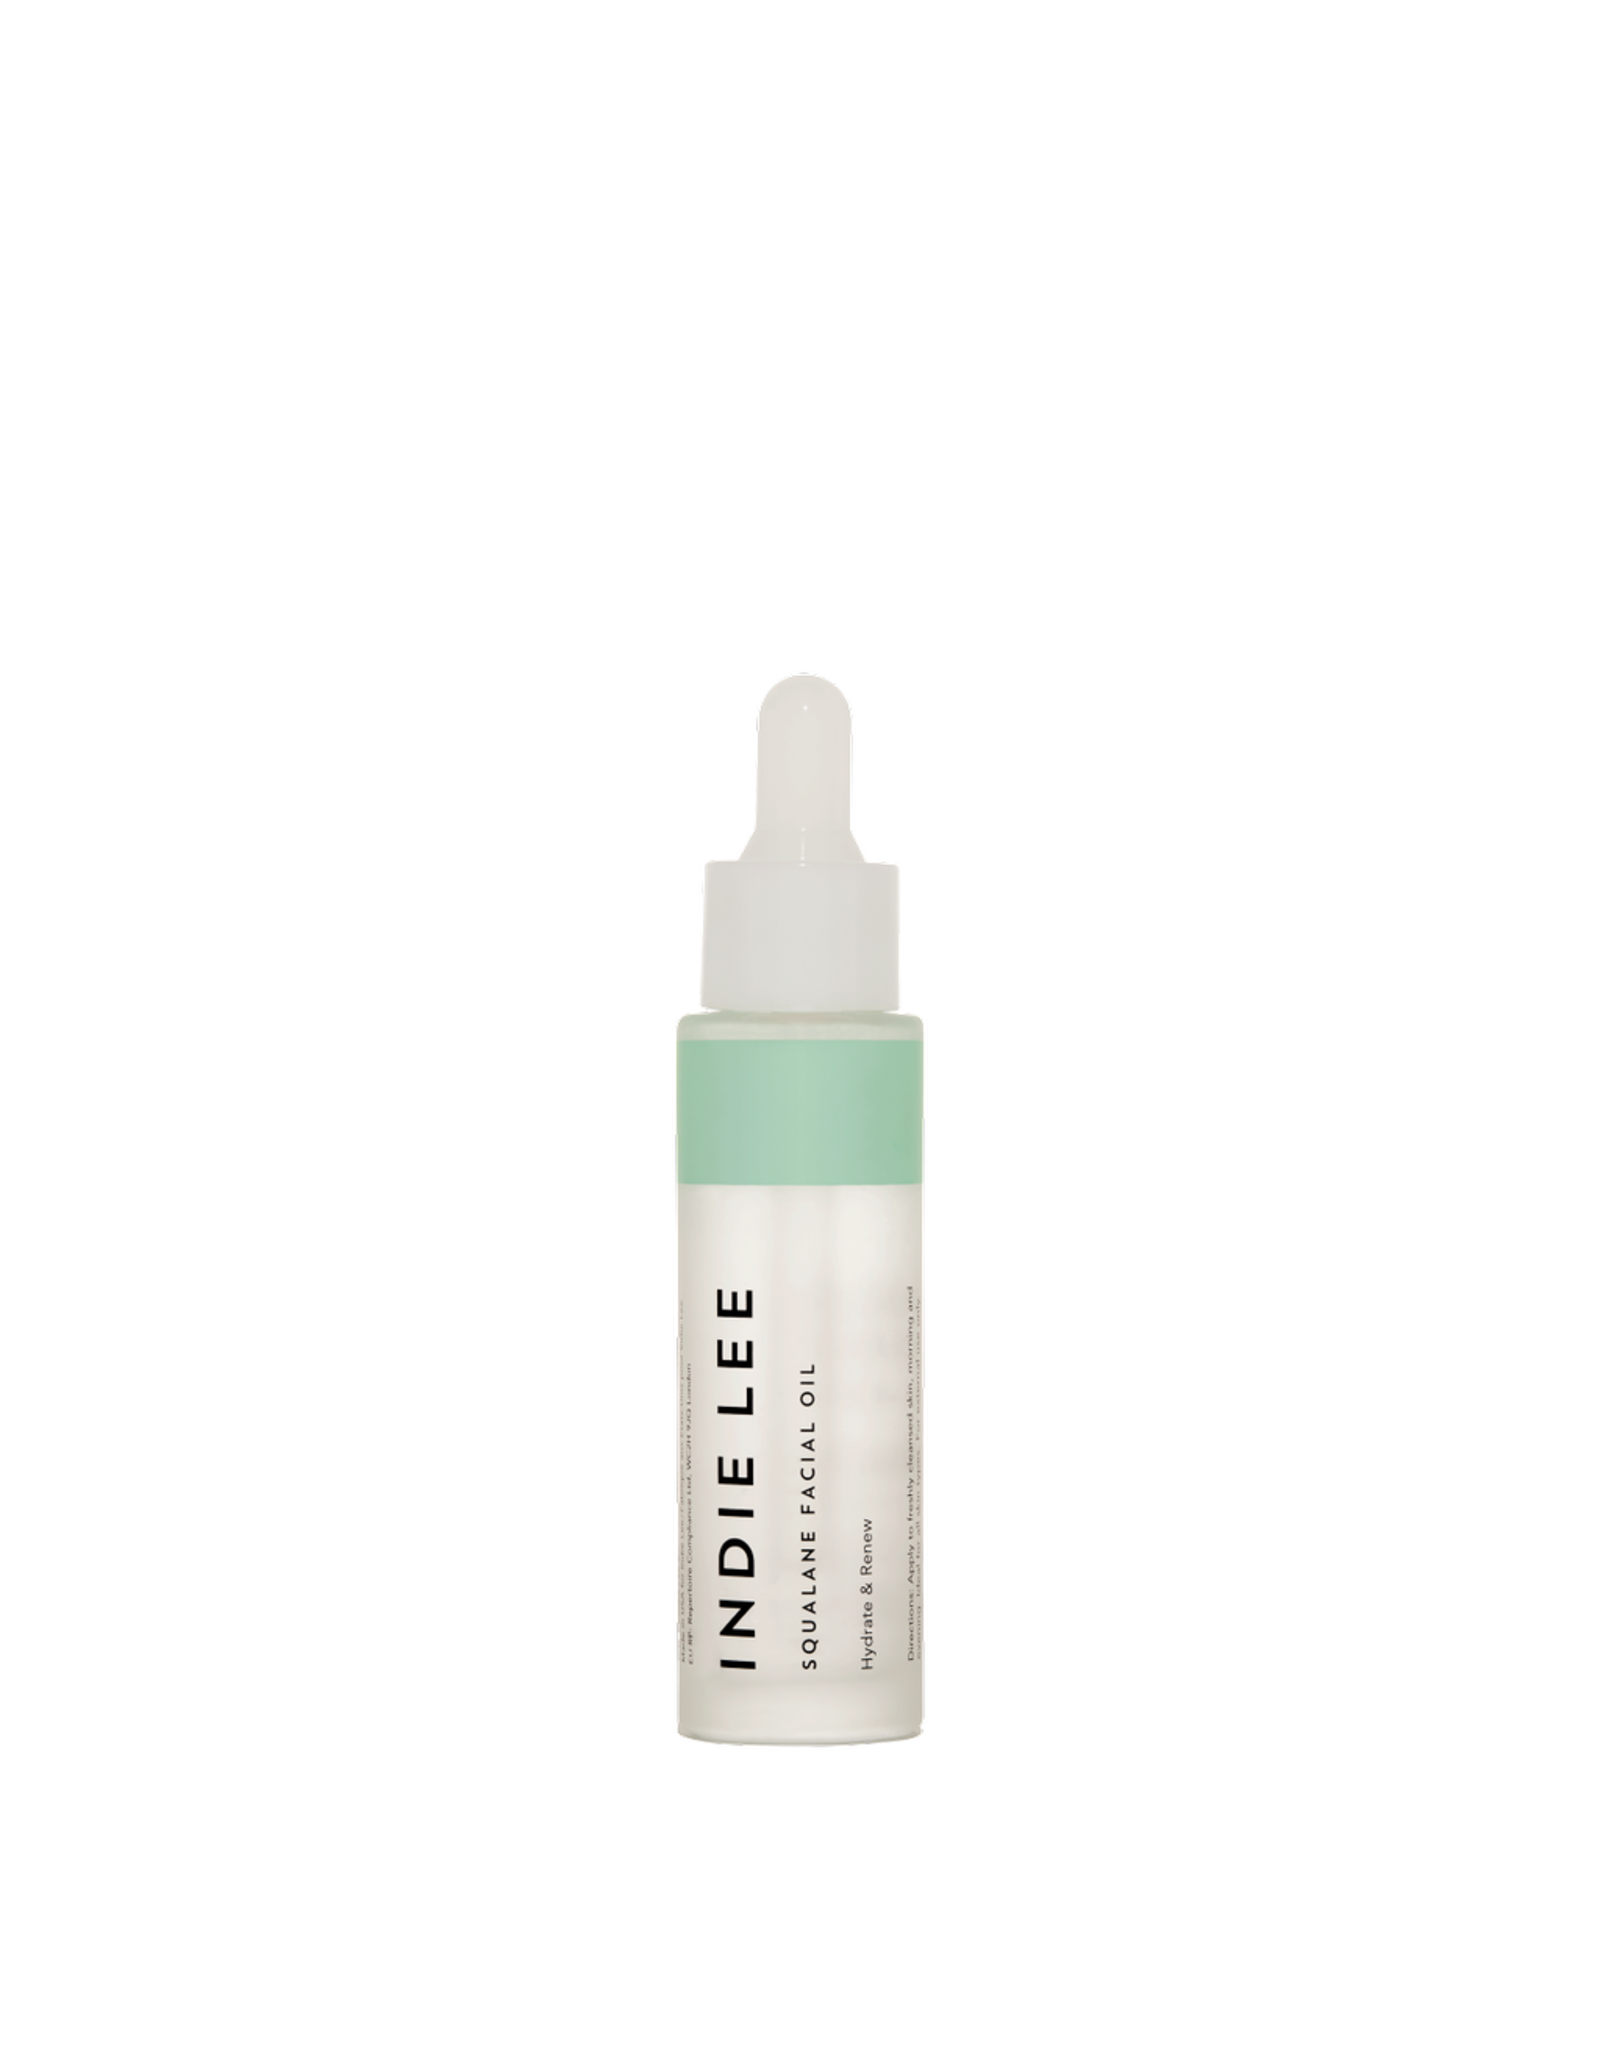 INDIE LEE Squalane Facial Oil (1 fl oz)